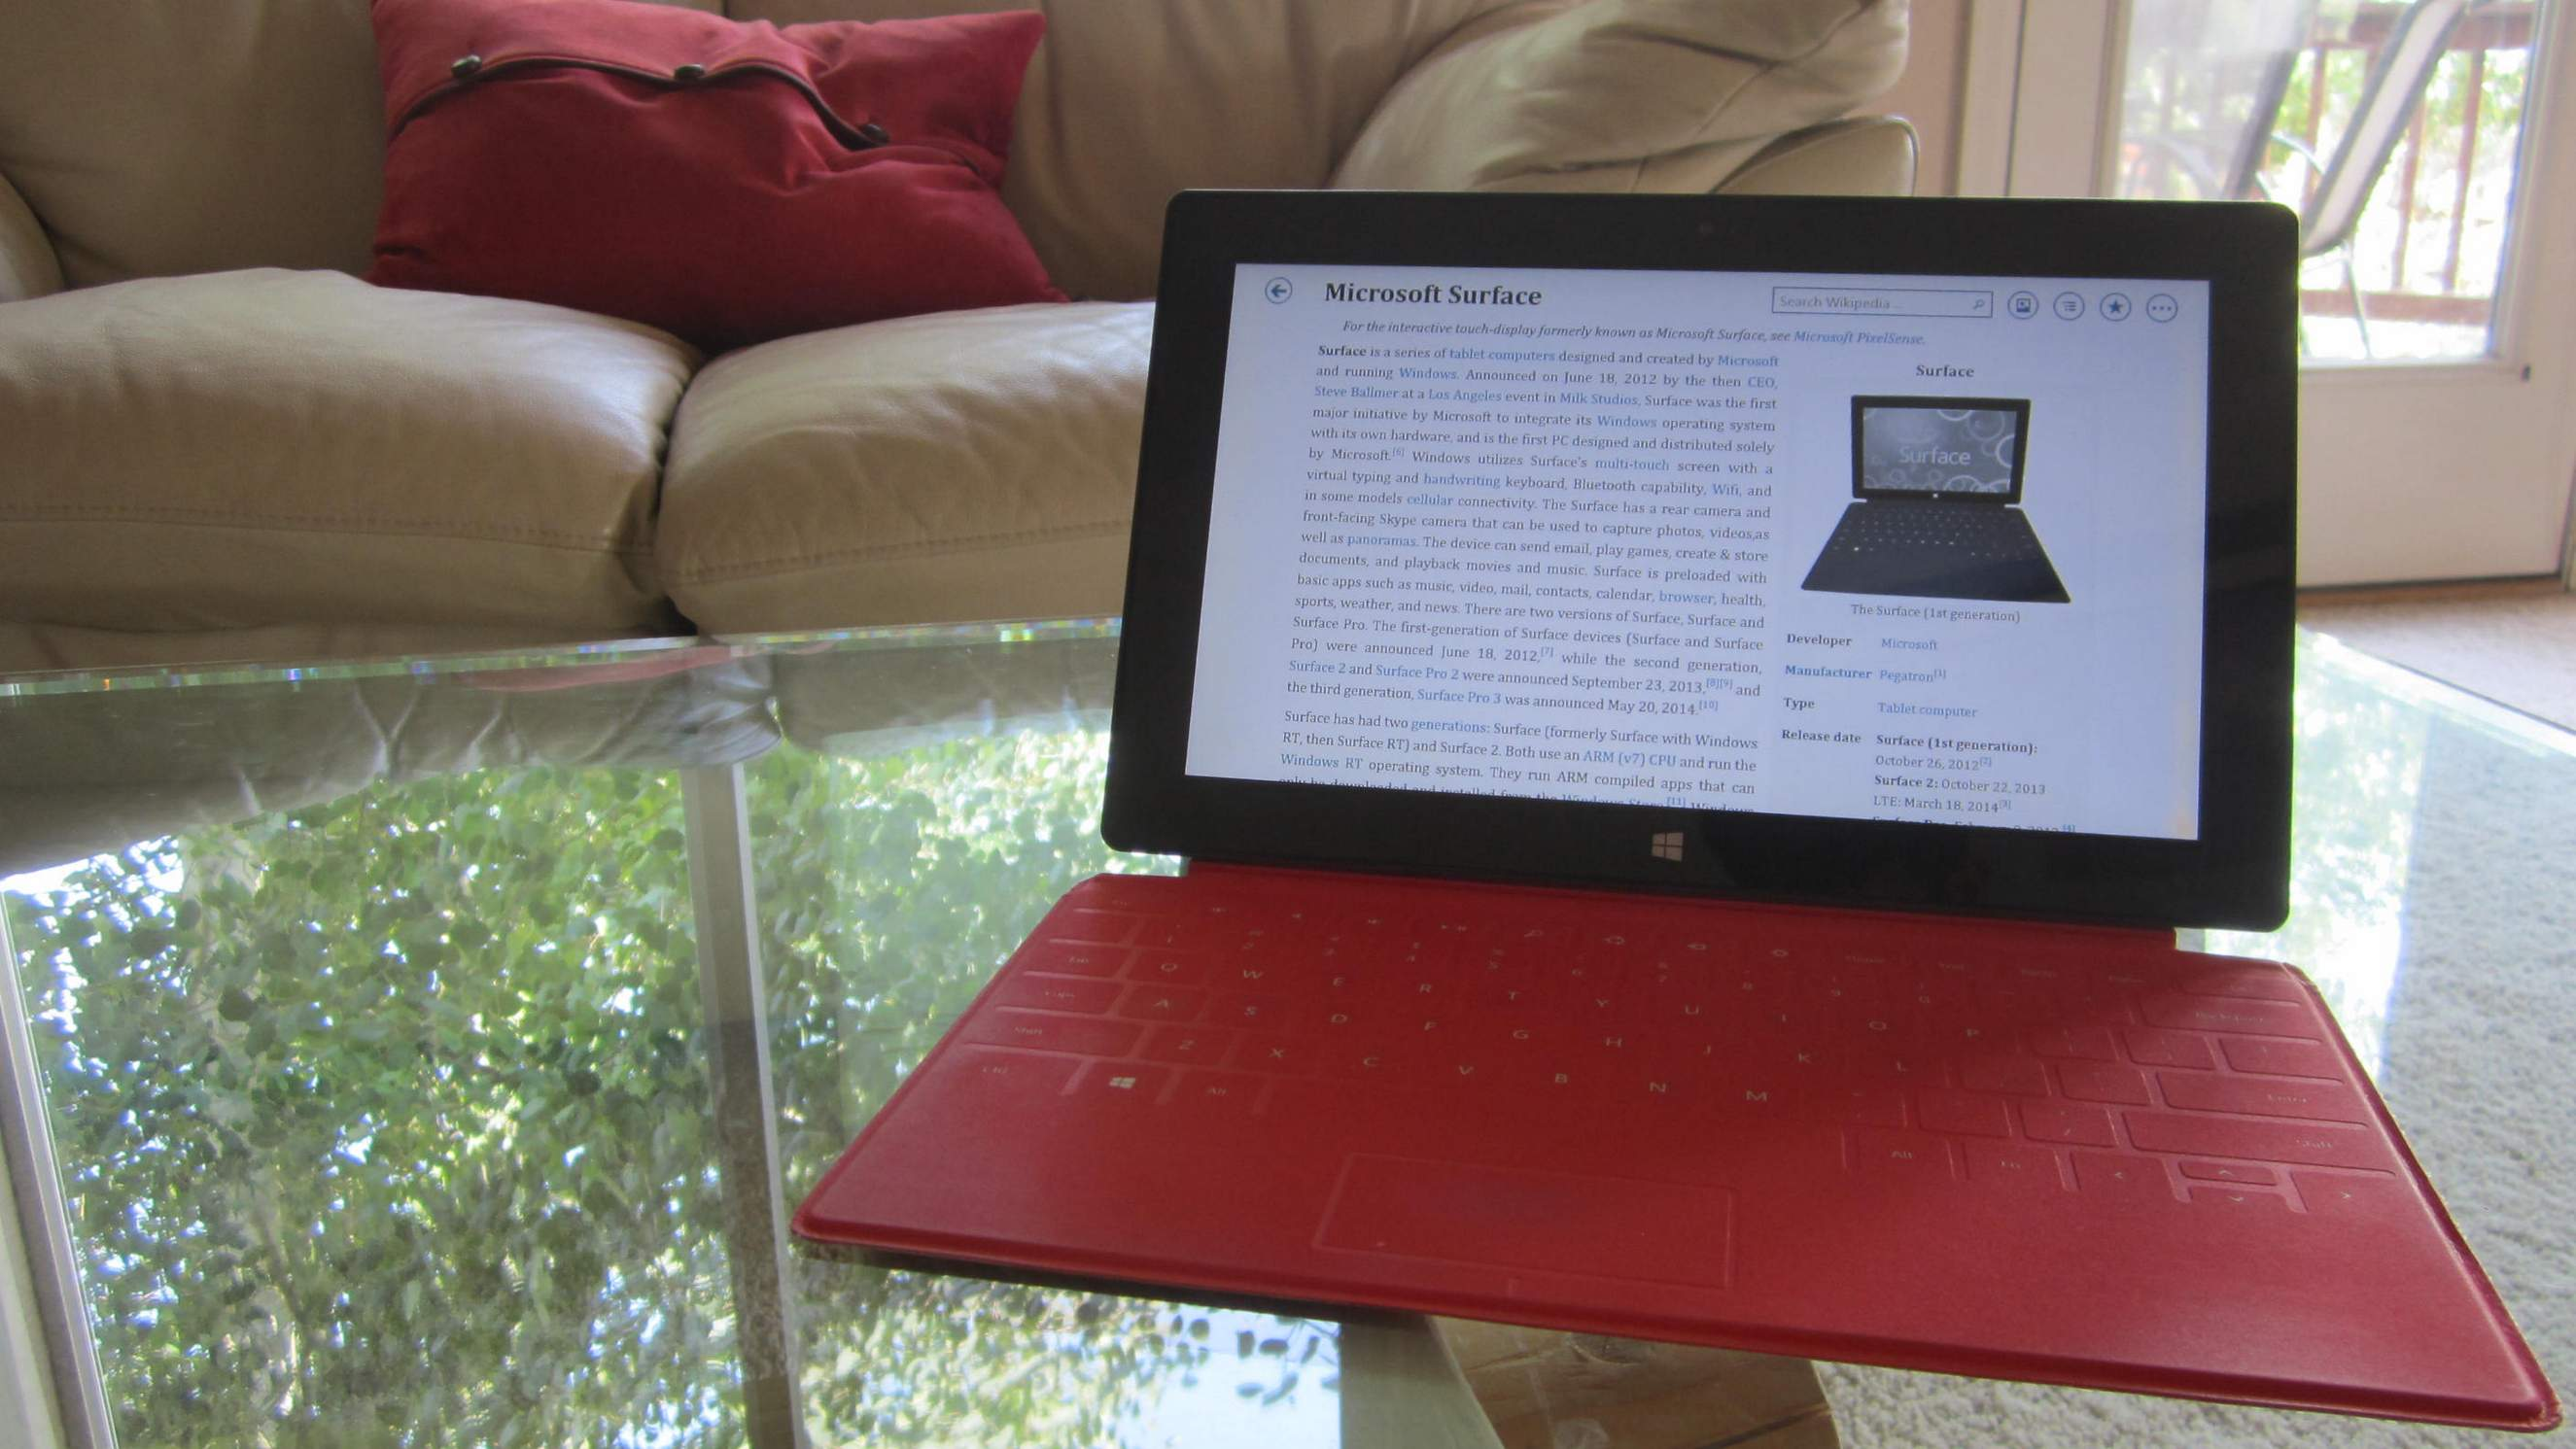 Despite being over 1.5 years old, the original Microsoft Surface RT continues to delight.